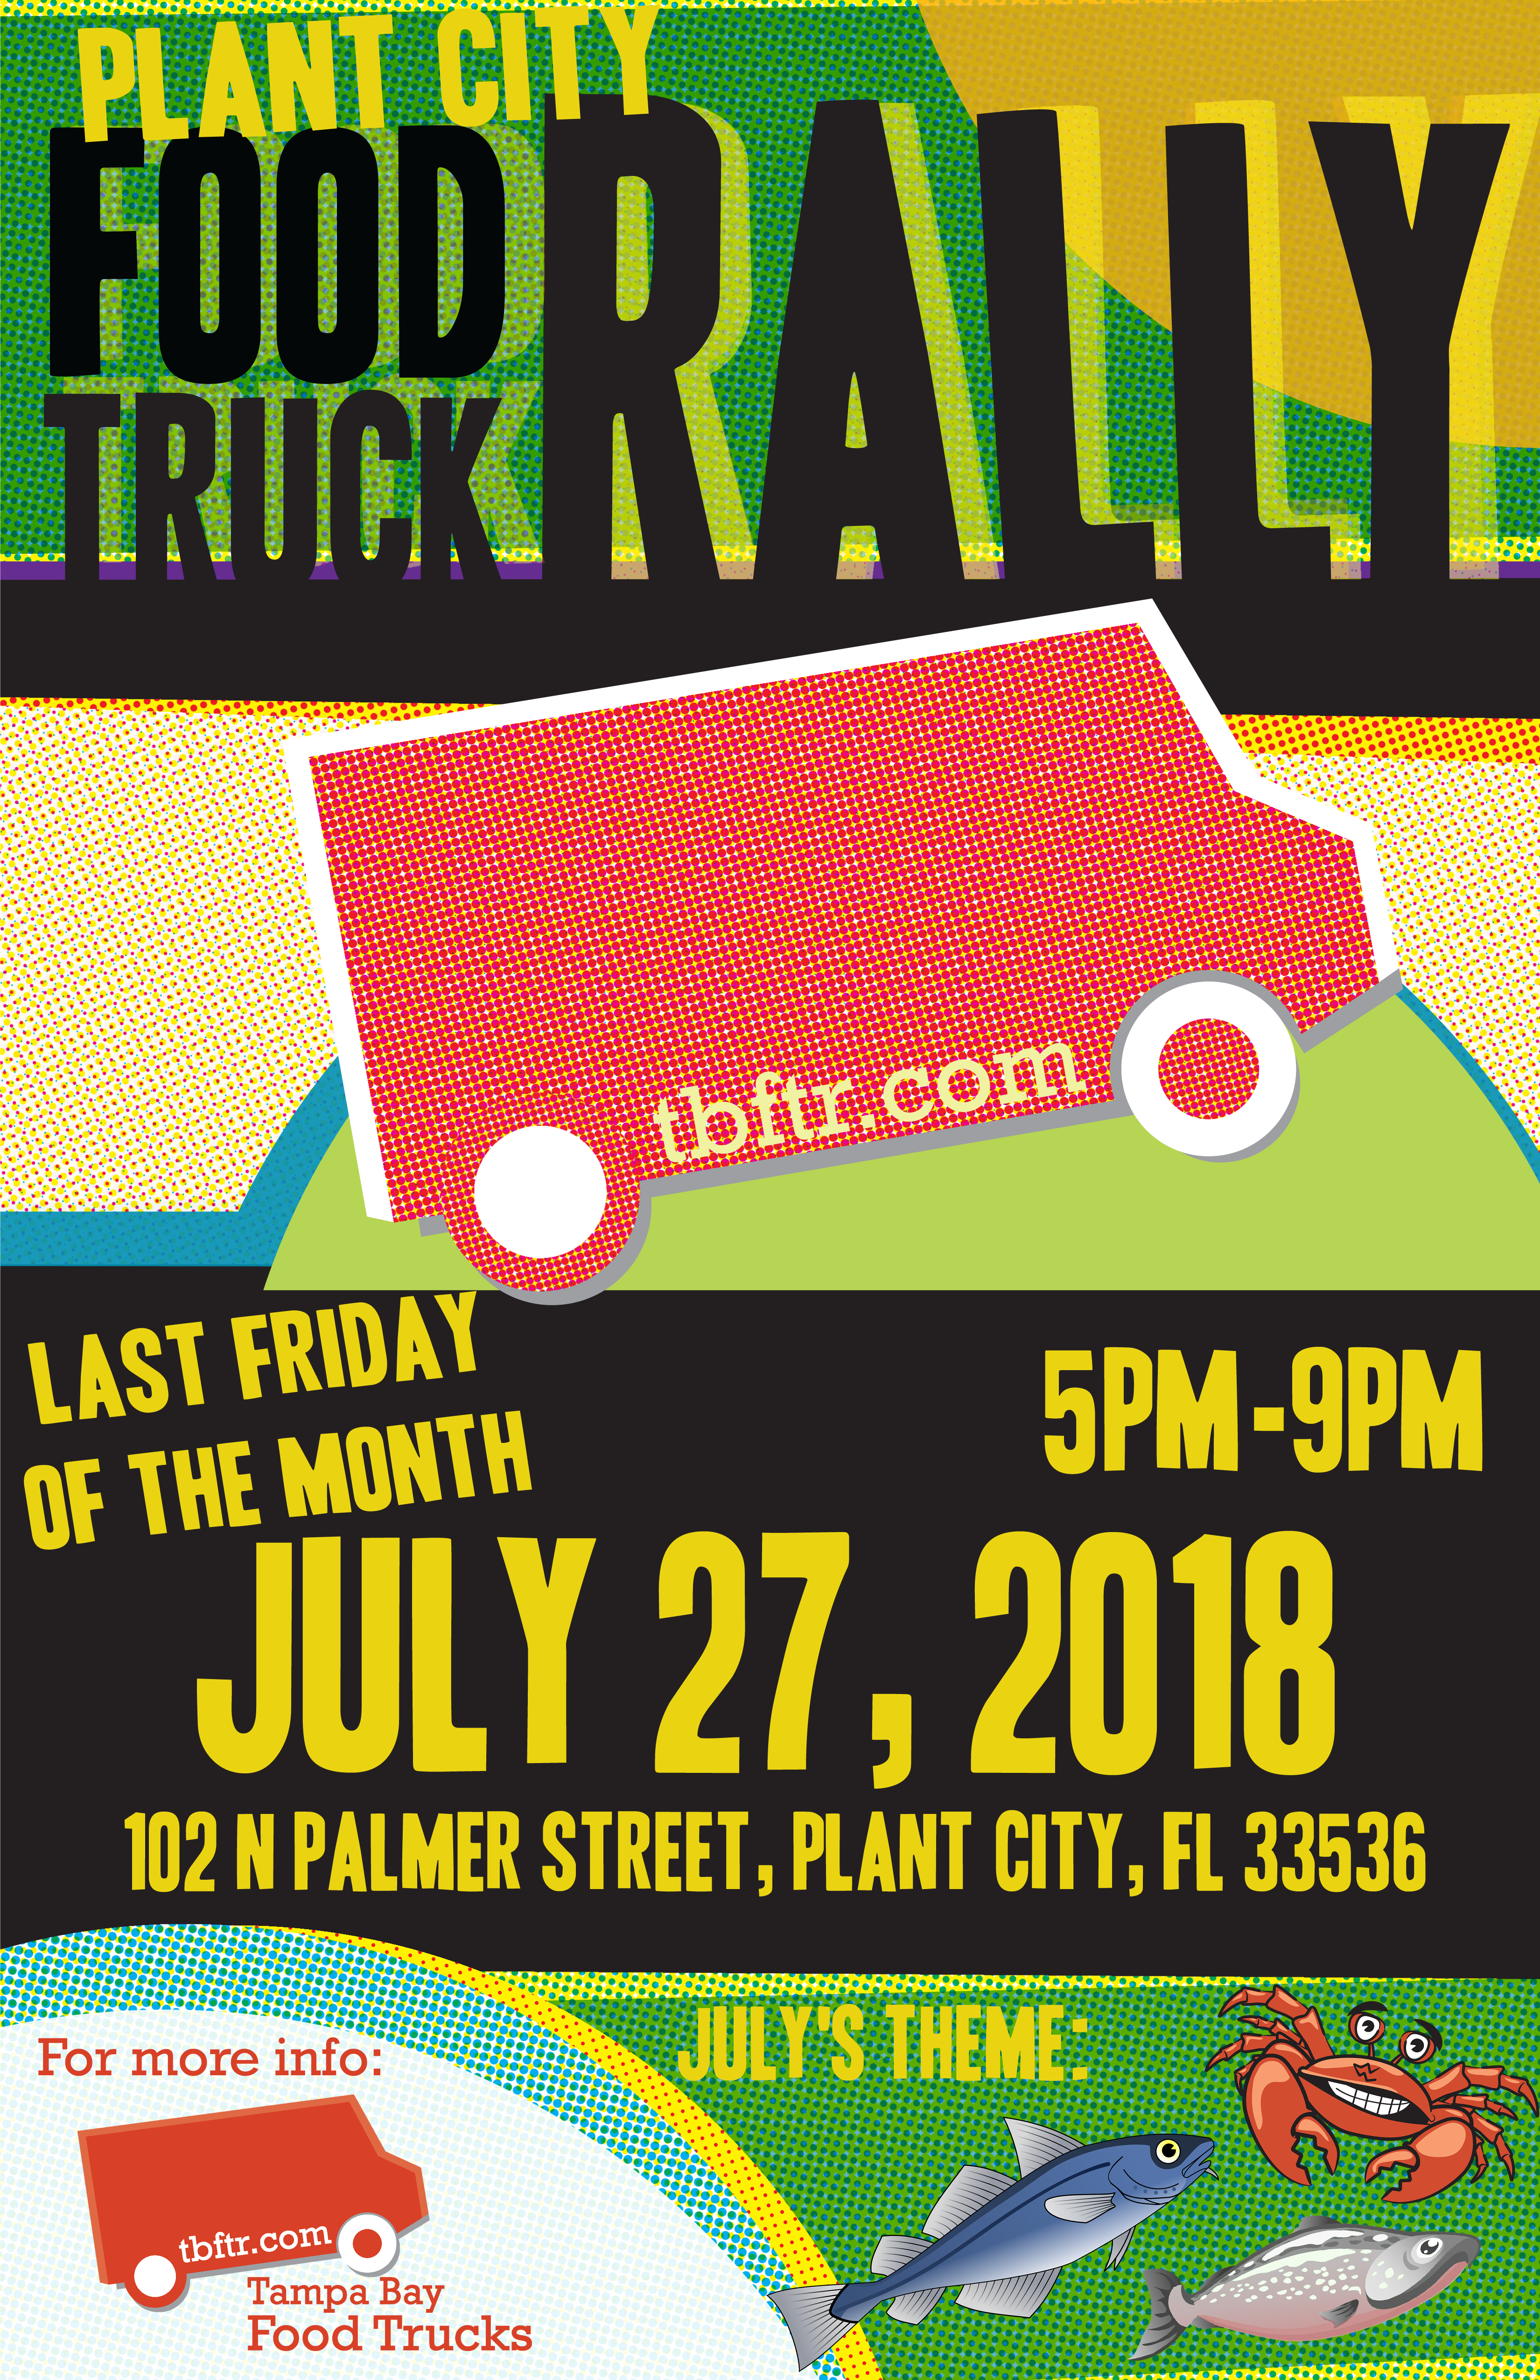 Plant City Food Truck Rally July